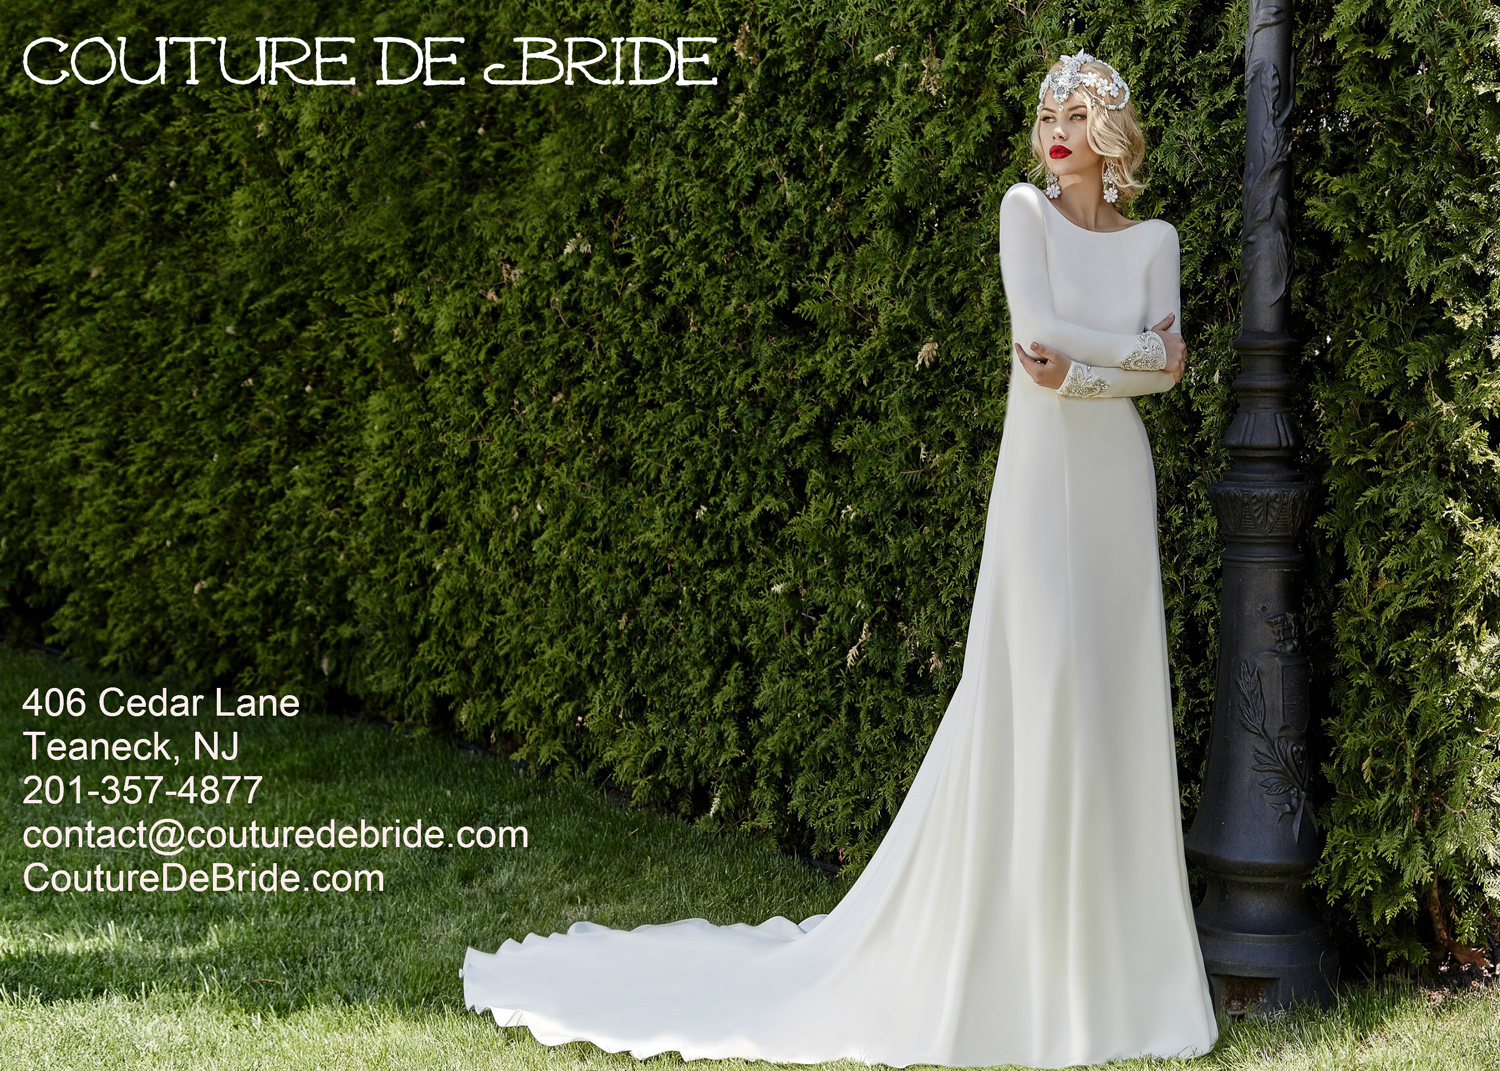 Couture De Bride Photo 2